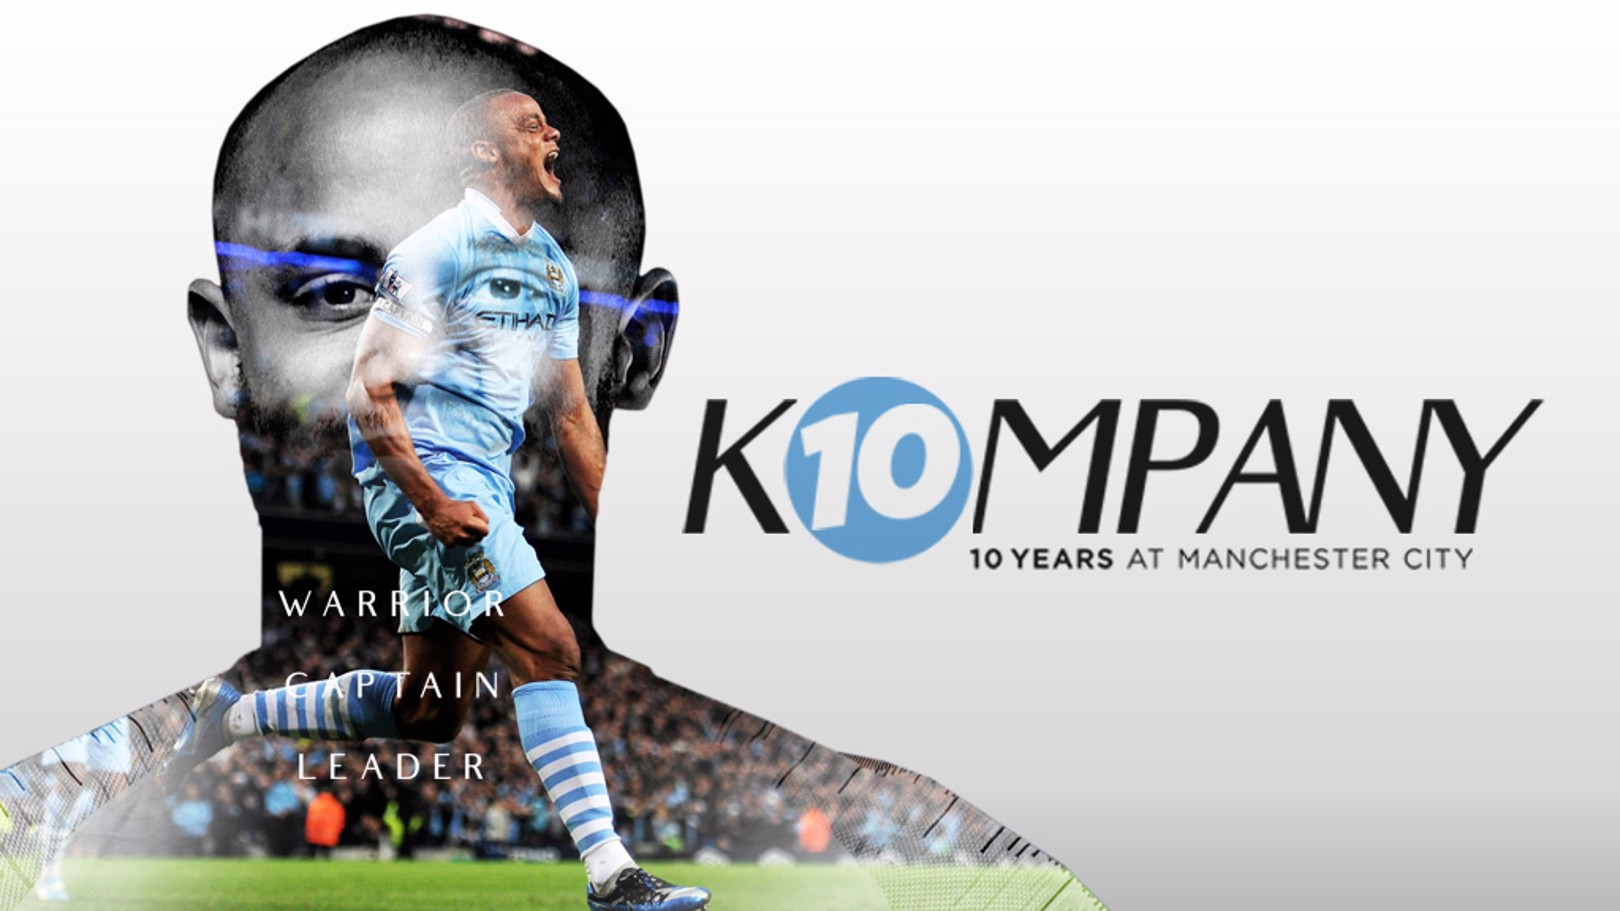 VINCENT KOMPANY: 10 Years